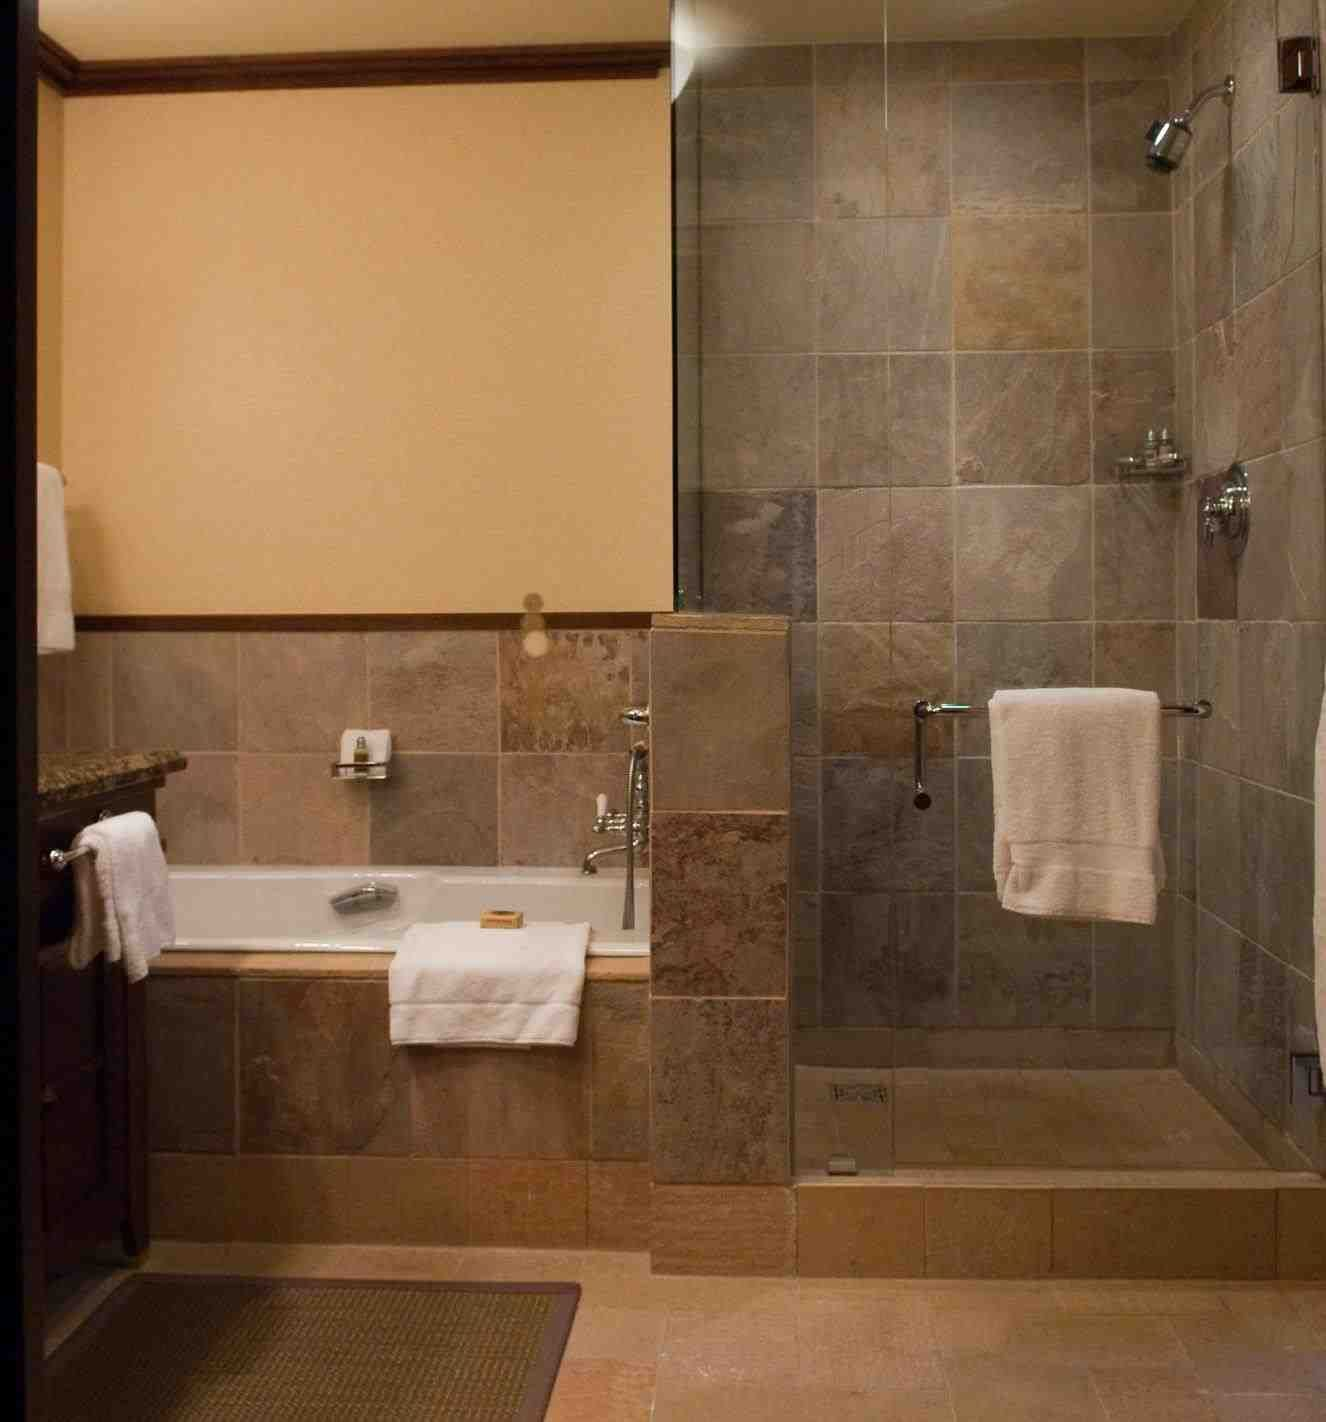 This Master Bathroom No Tub 37 Bathrooms With Walk In Showers Page 2 Of 7 Gorgeous Bathr Doorless Shower Design Doorless Shower Small Bathroom With Shower